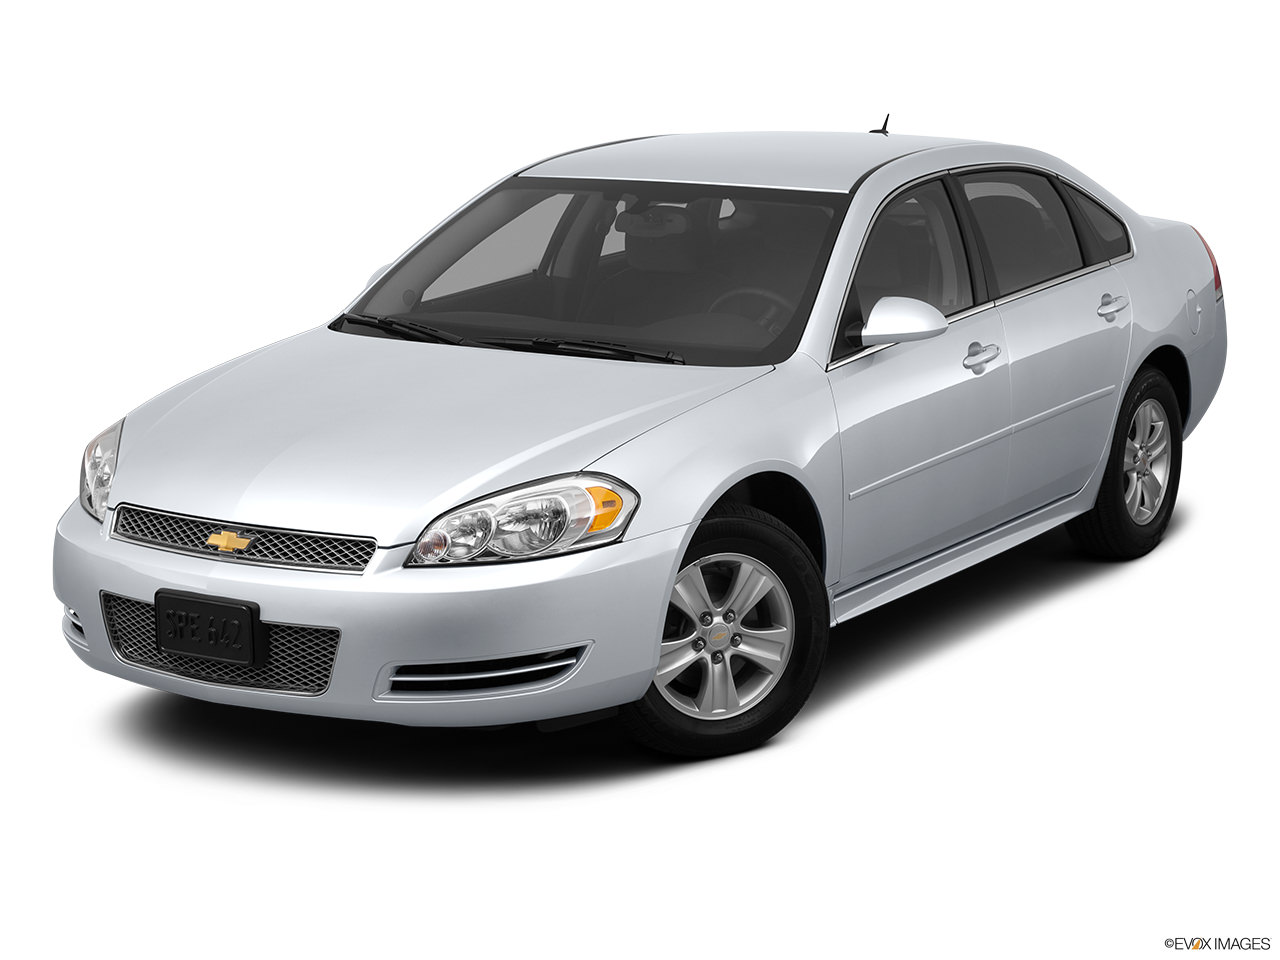 Impala 2012 chevrolet impala lt : A Buyer's Guide to the 2012 Chevrolet Impala | YourMechanic Advice